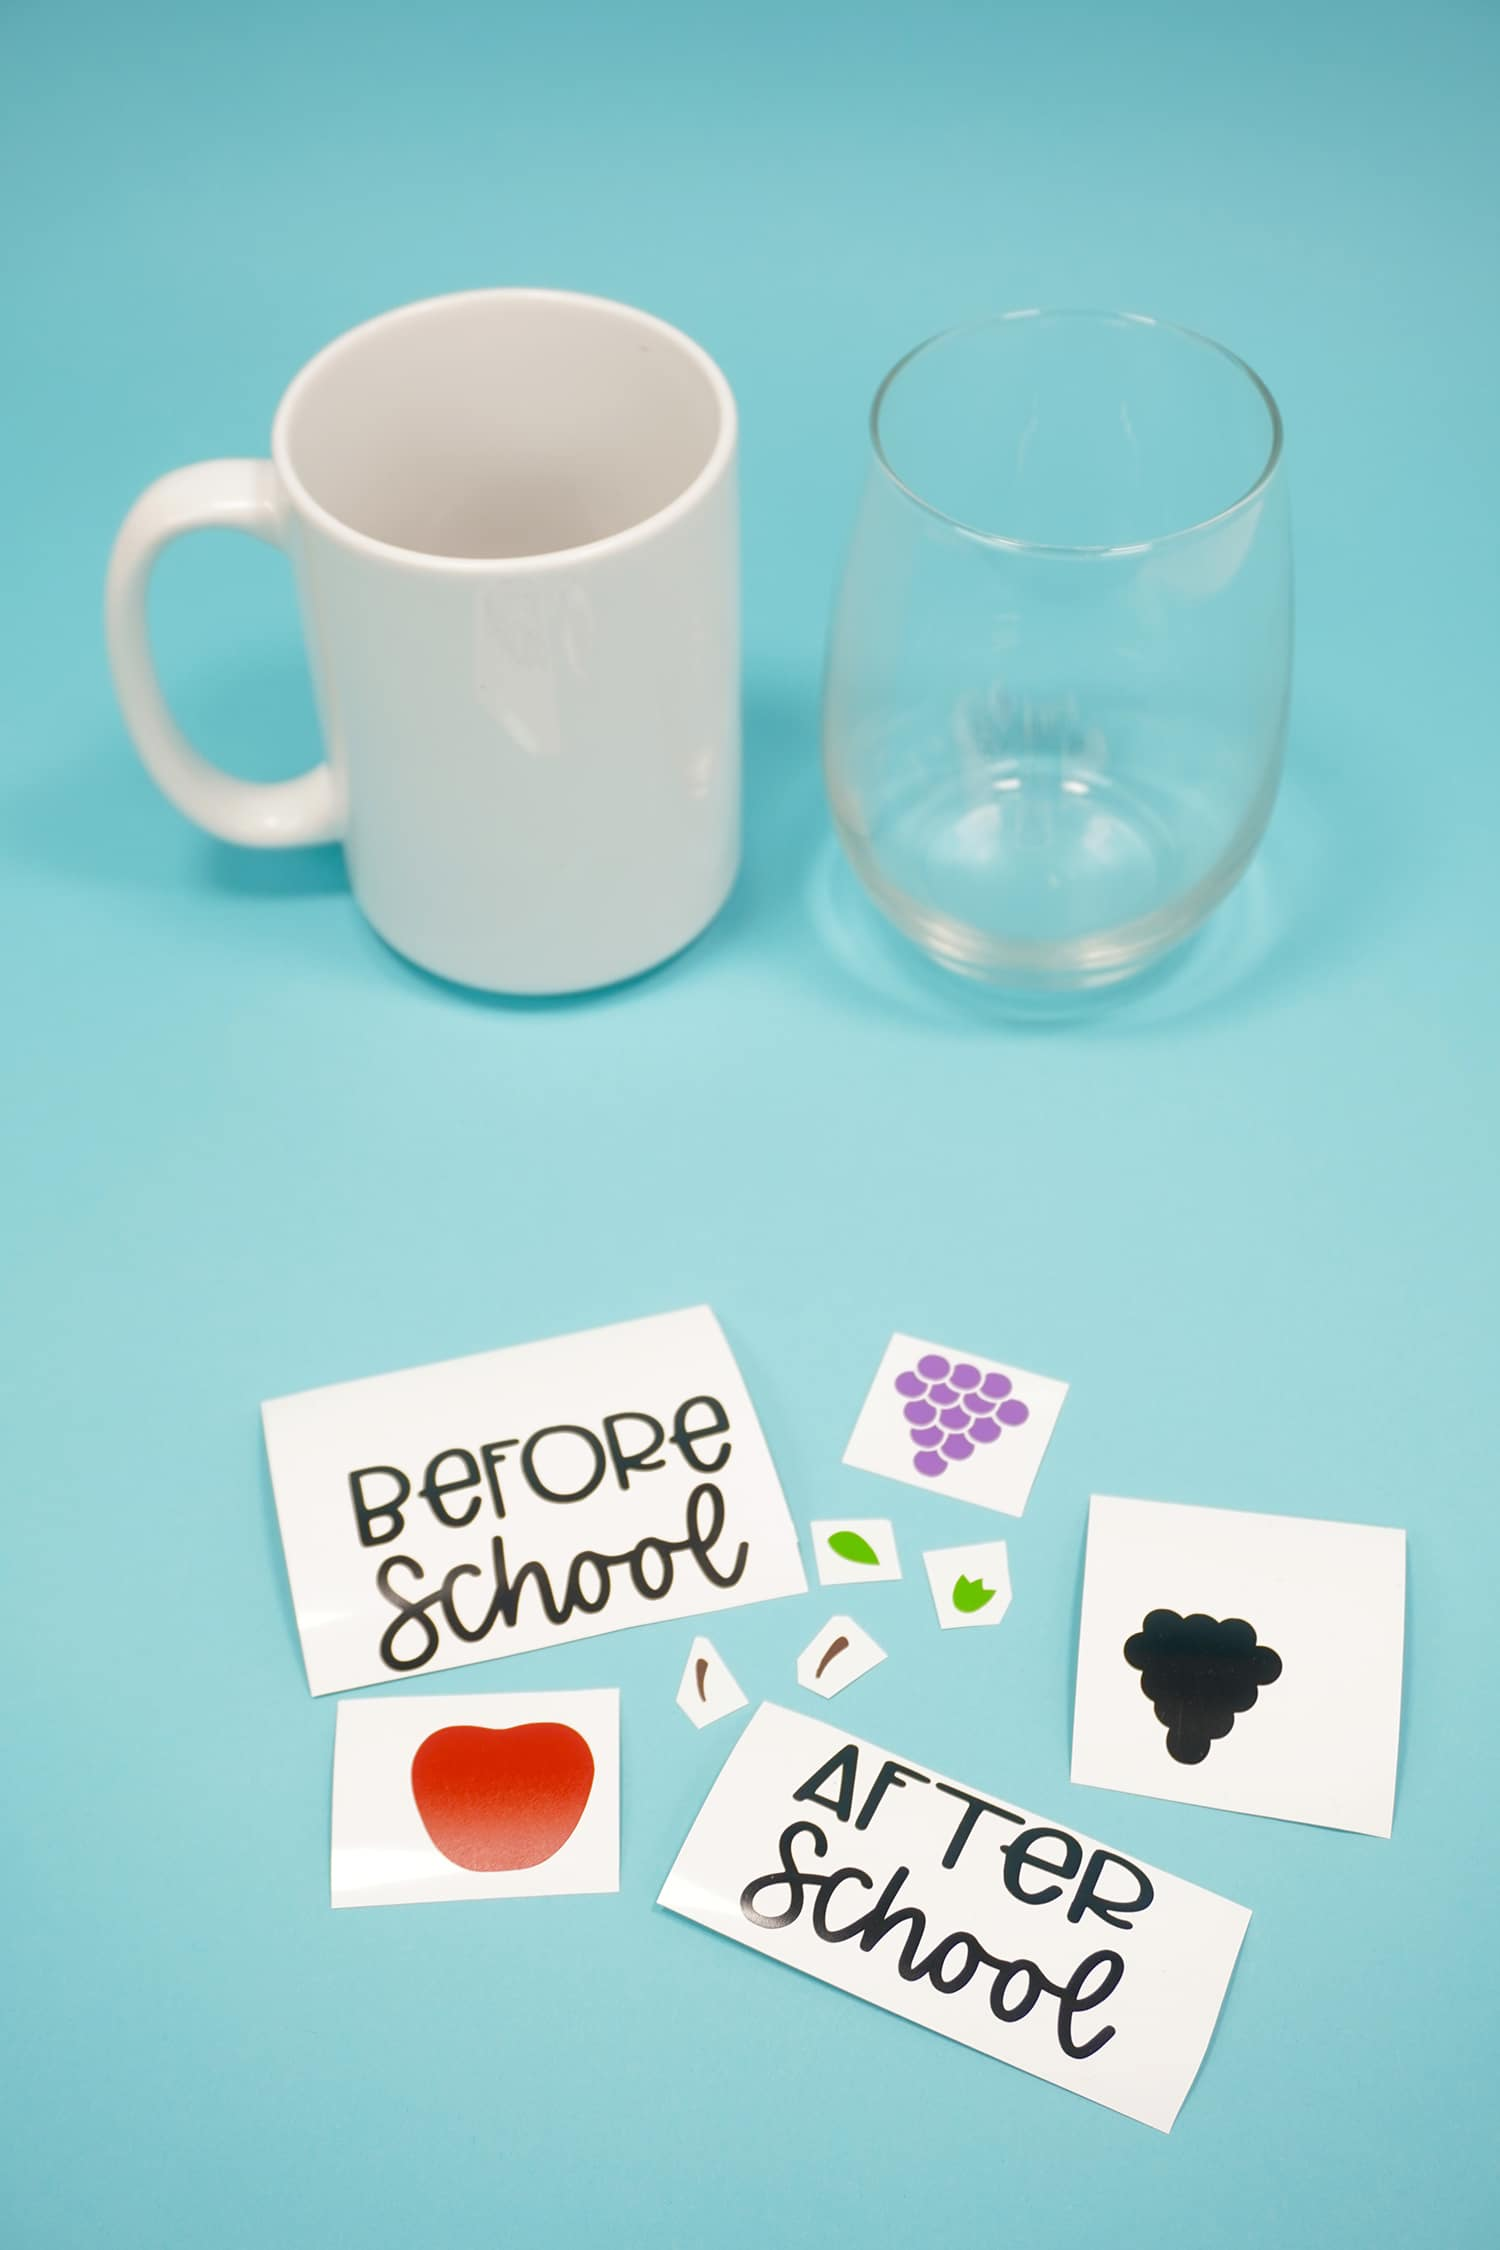 White mug and clear wine glass on blue background with assorted vinyl designs in foreground